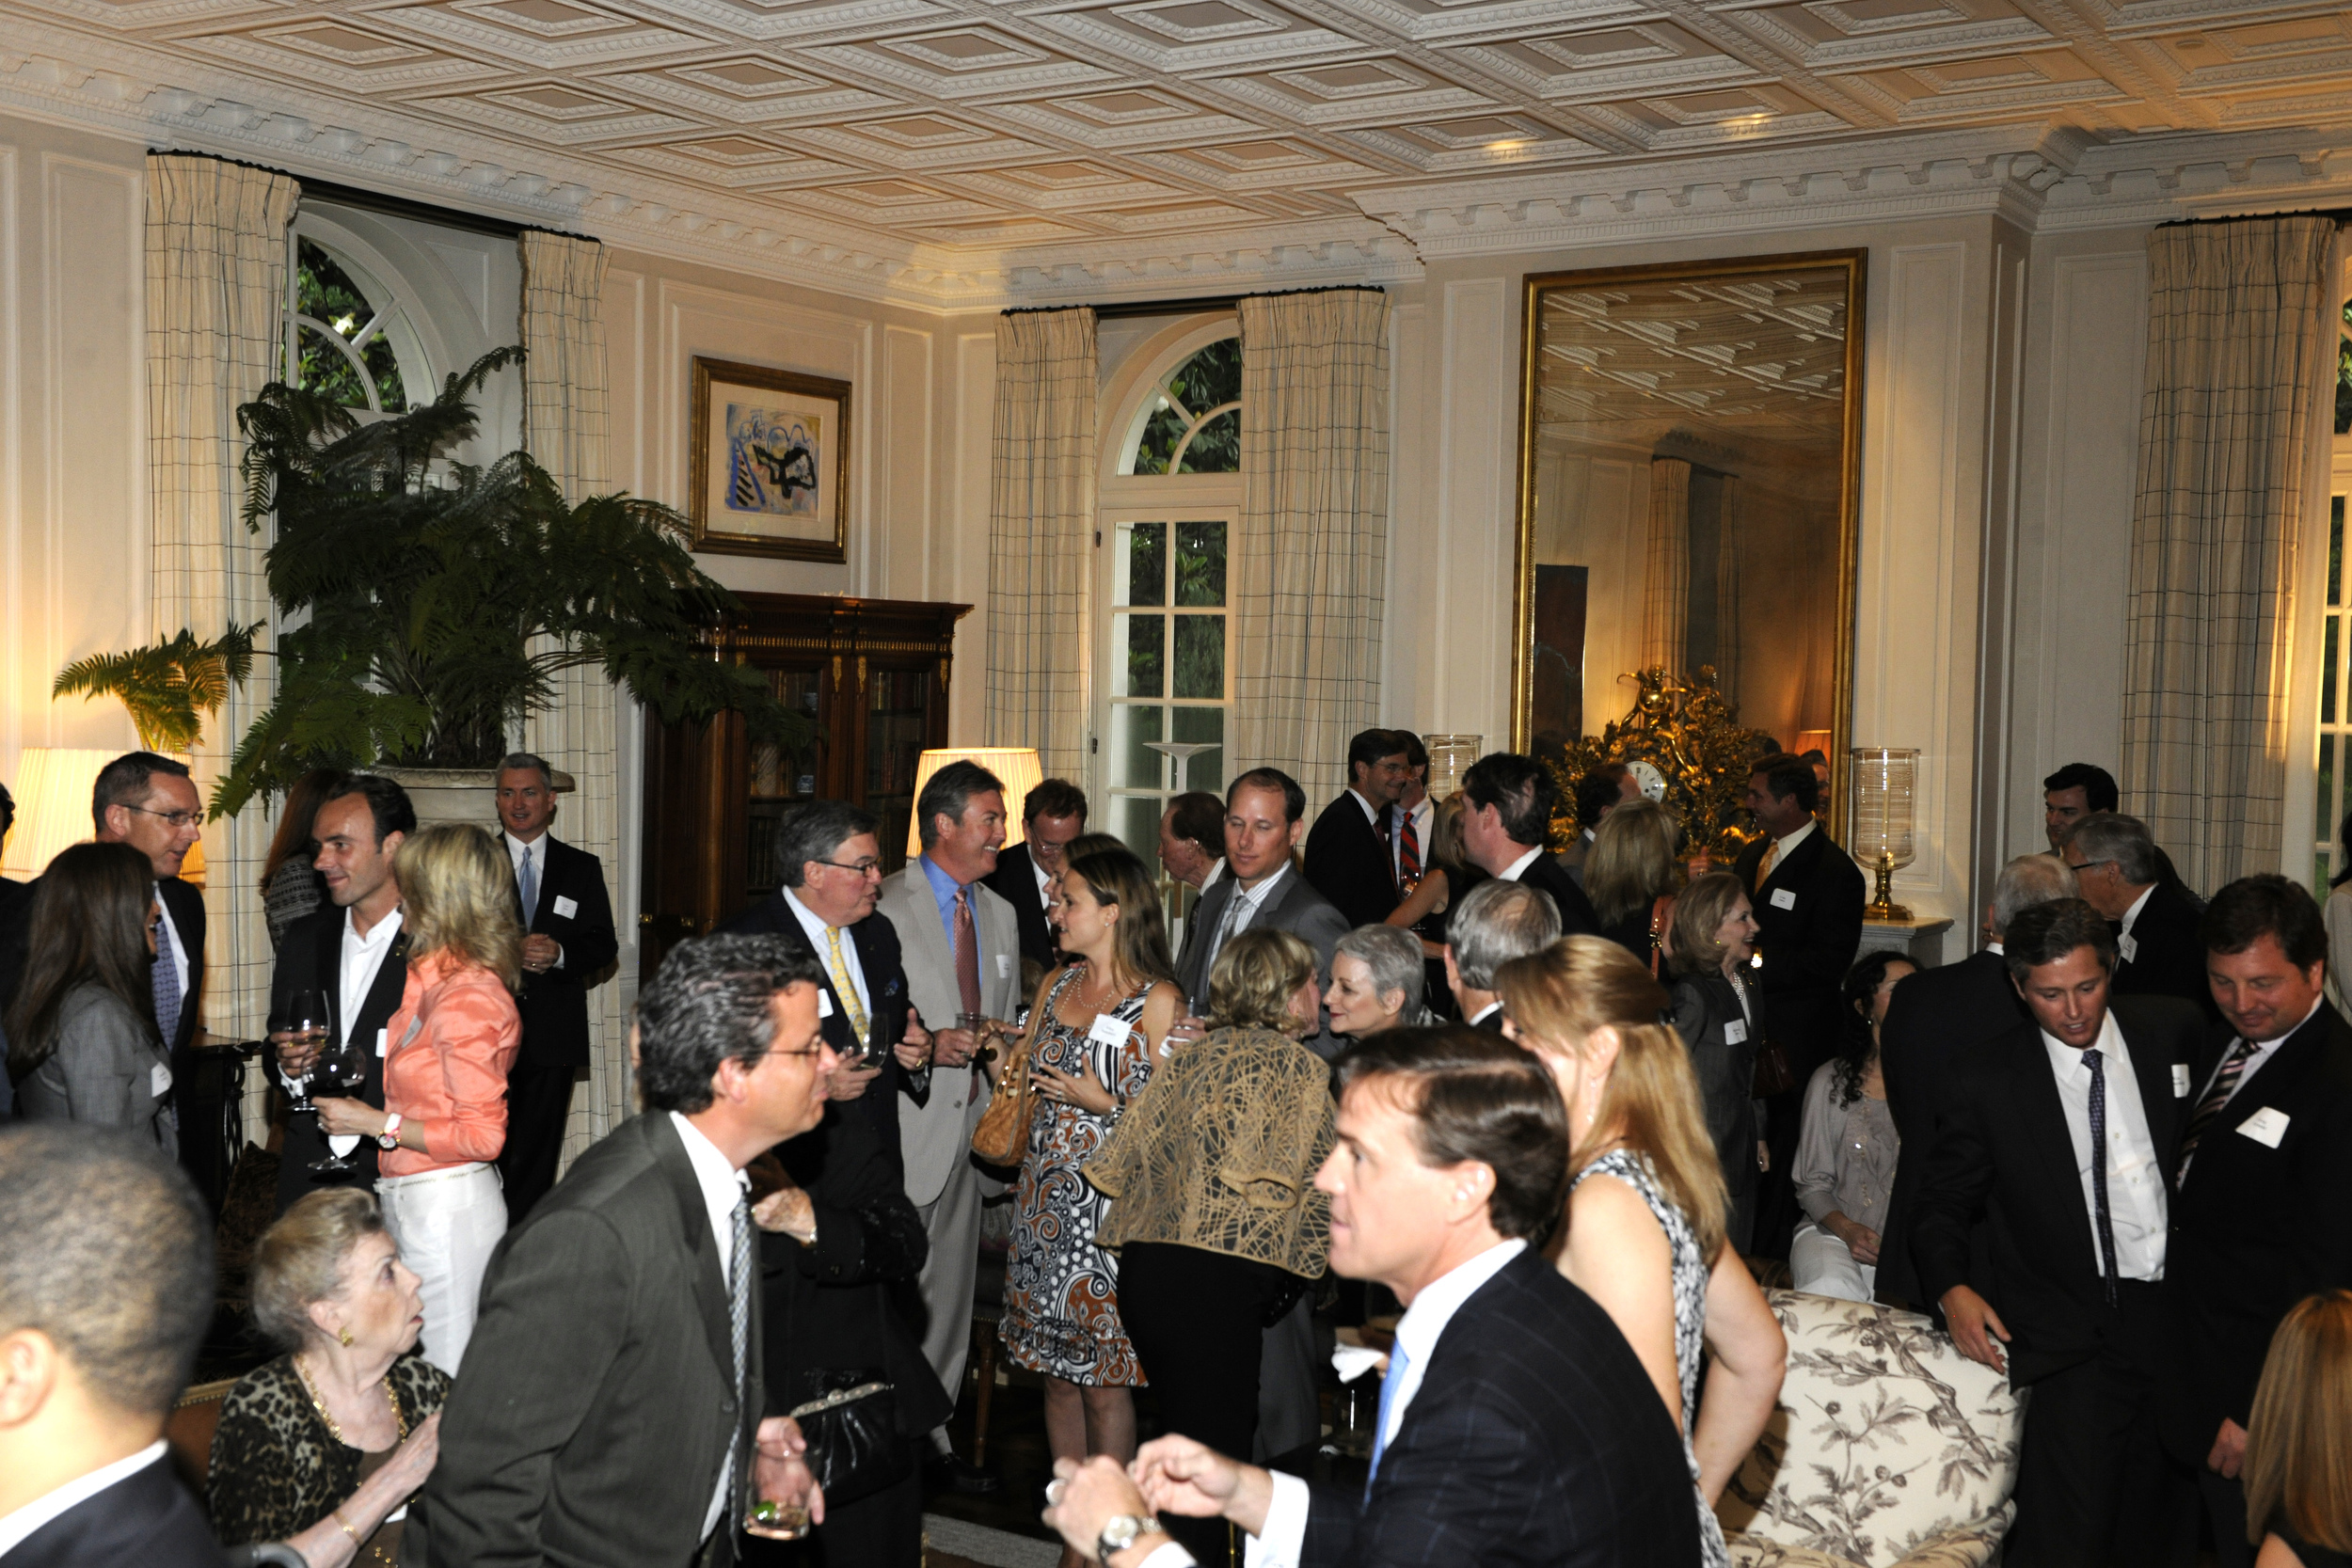 Guests at a Governor Tim Pawlenty Dallas fundraiser in 2011.